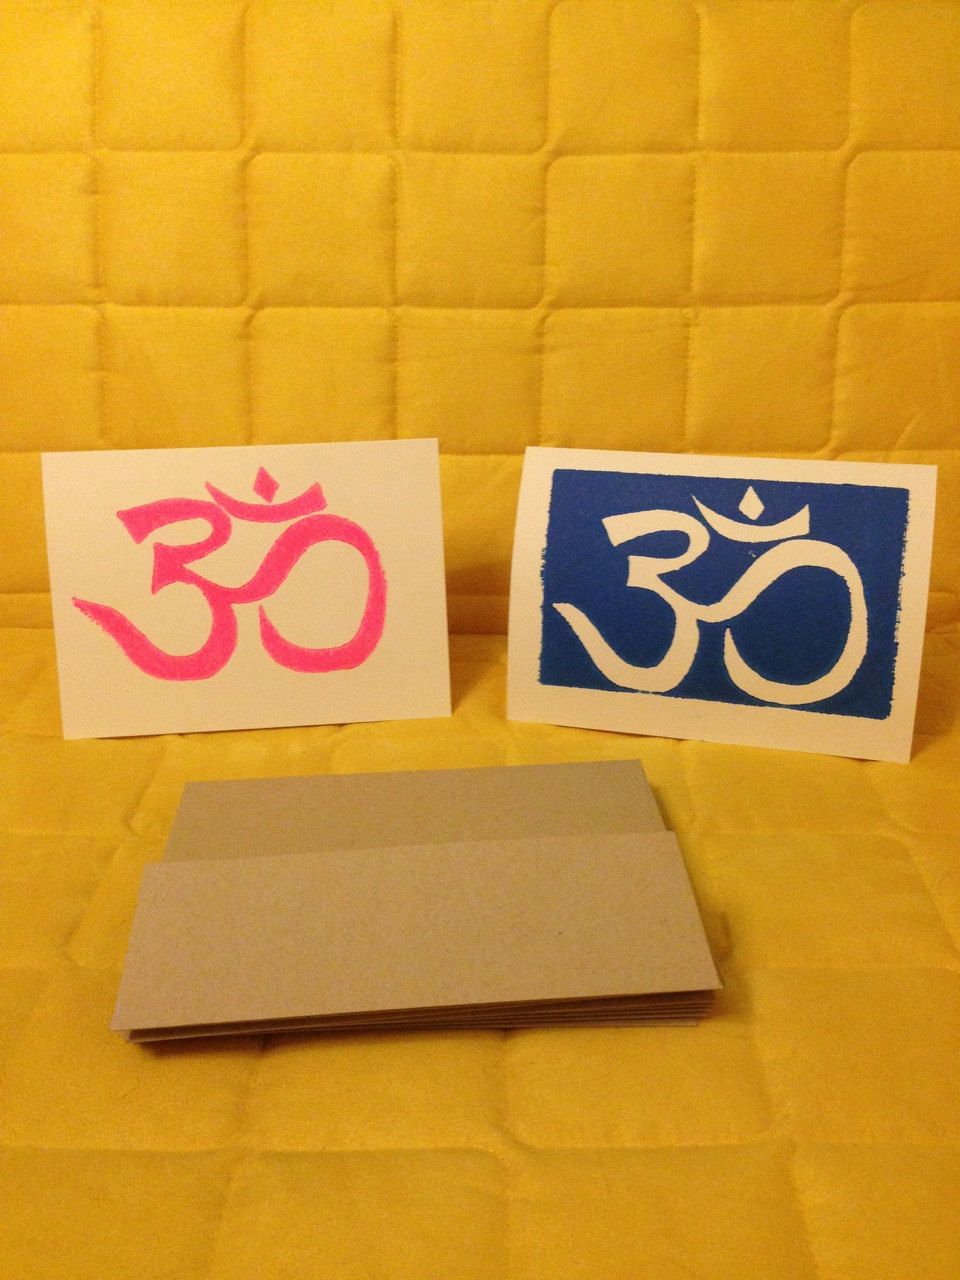 Linoleumboden Pinterest Blue And Pink Om Note Cards Linoleum Block Prints By